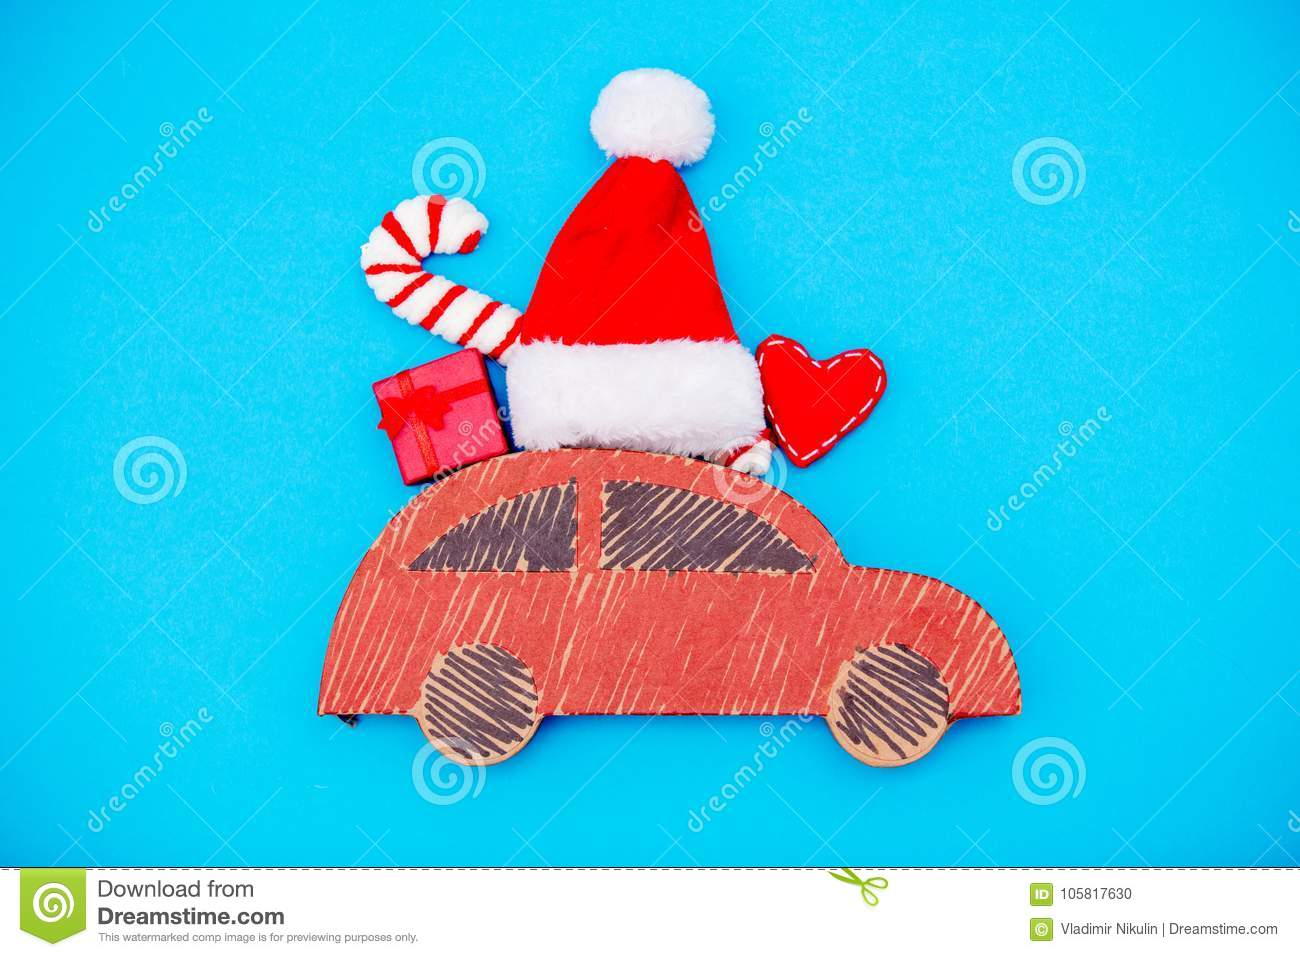 Red Handmade Car Delivery With Christmas Gifts Stock Photo - Image ...